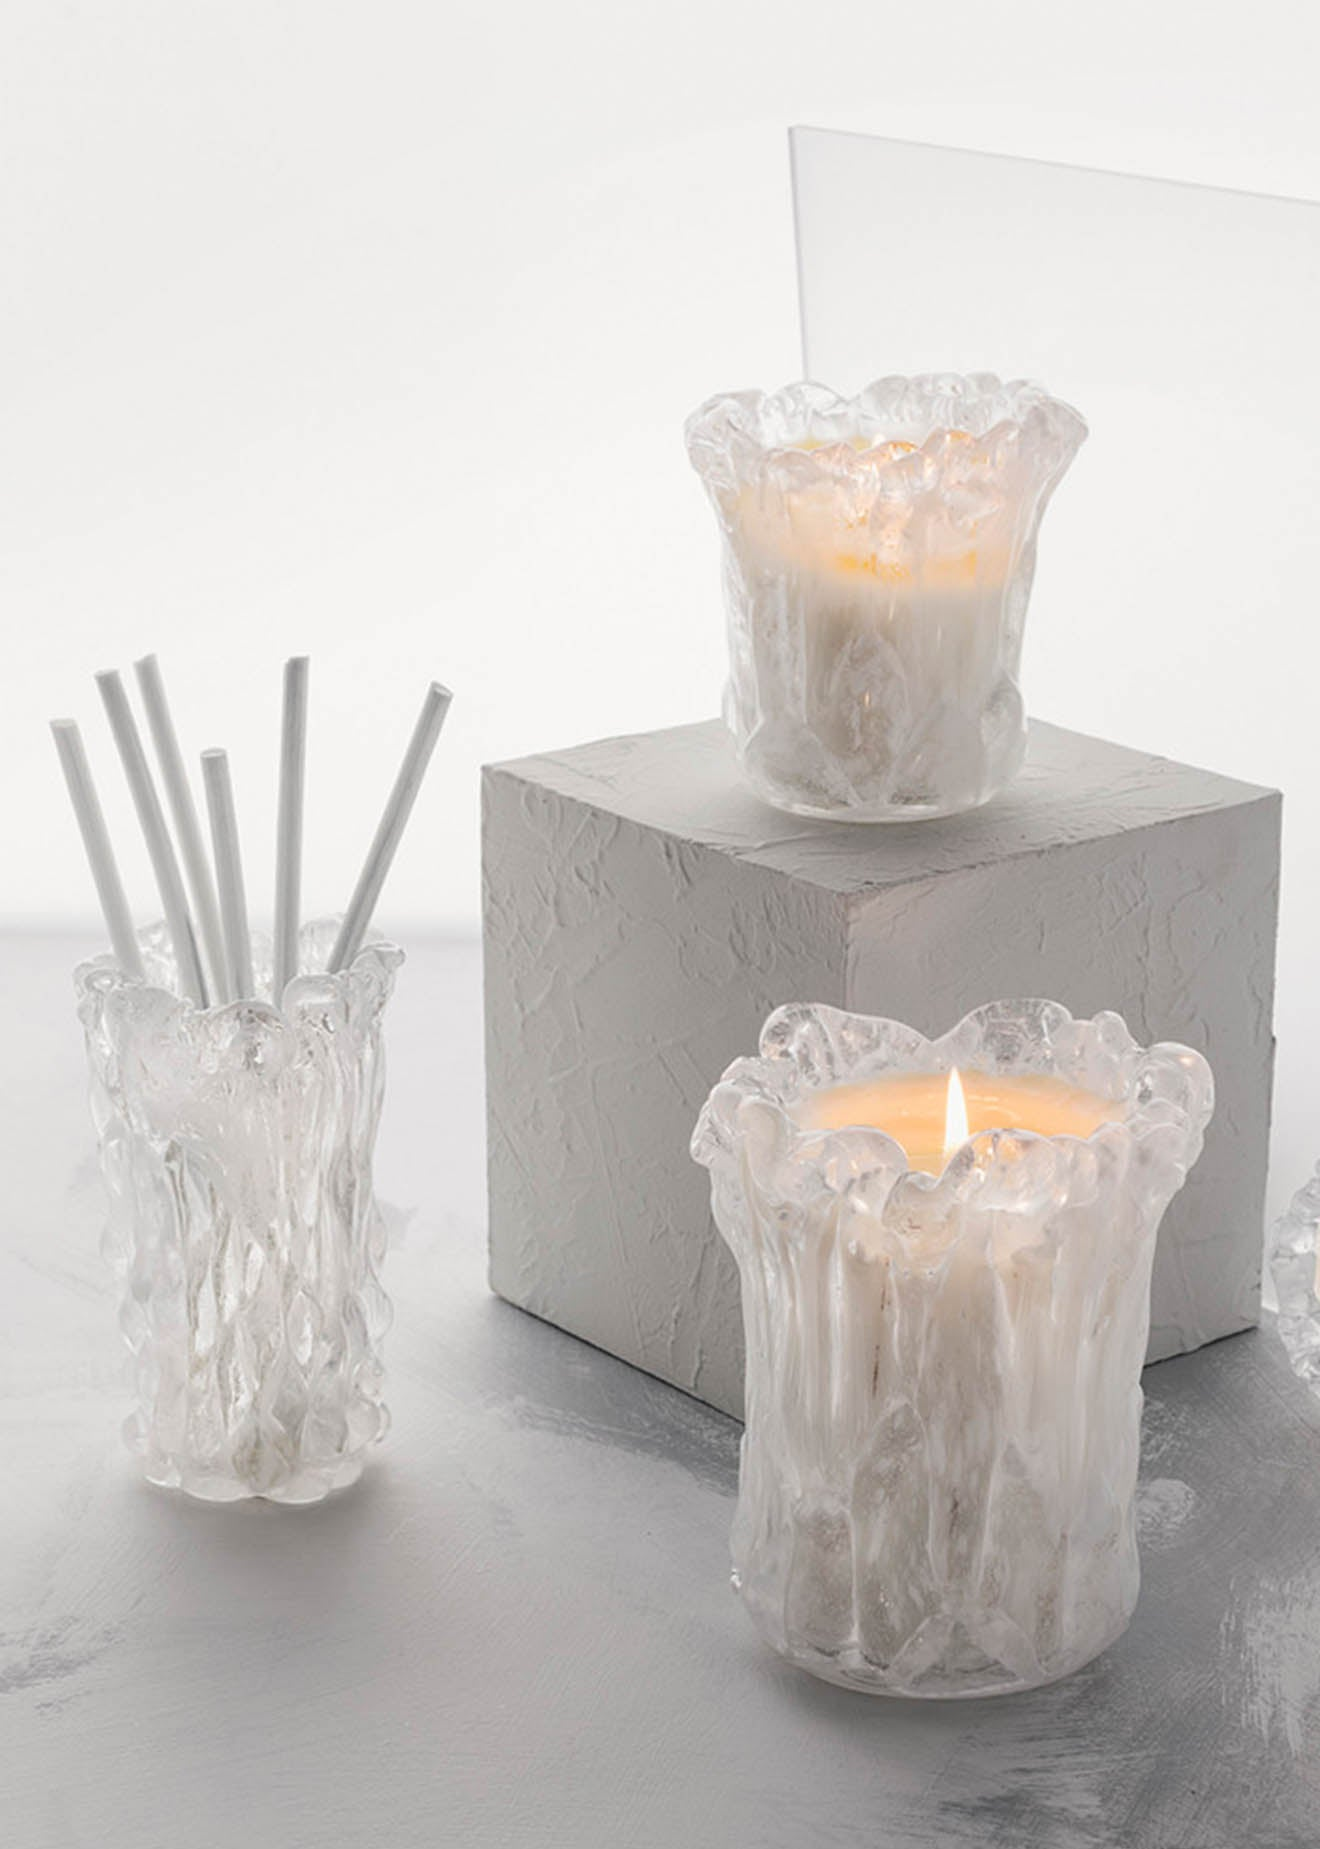 Tom Dixon Quartz collection of scents and candles